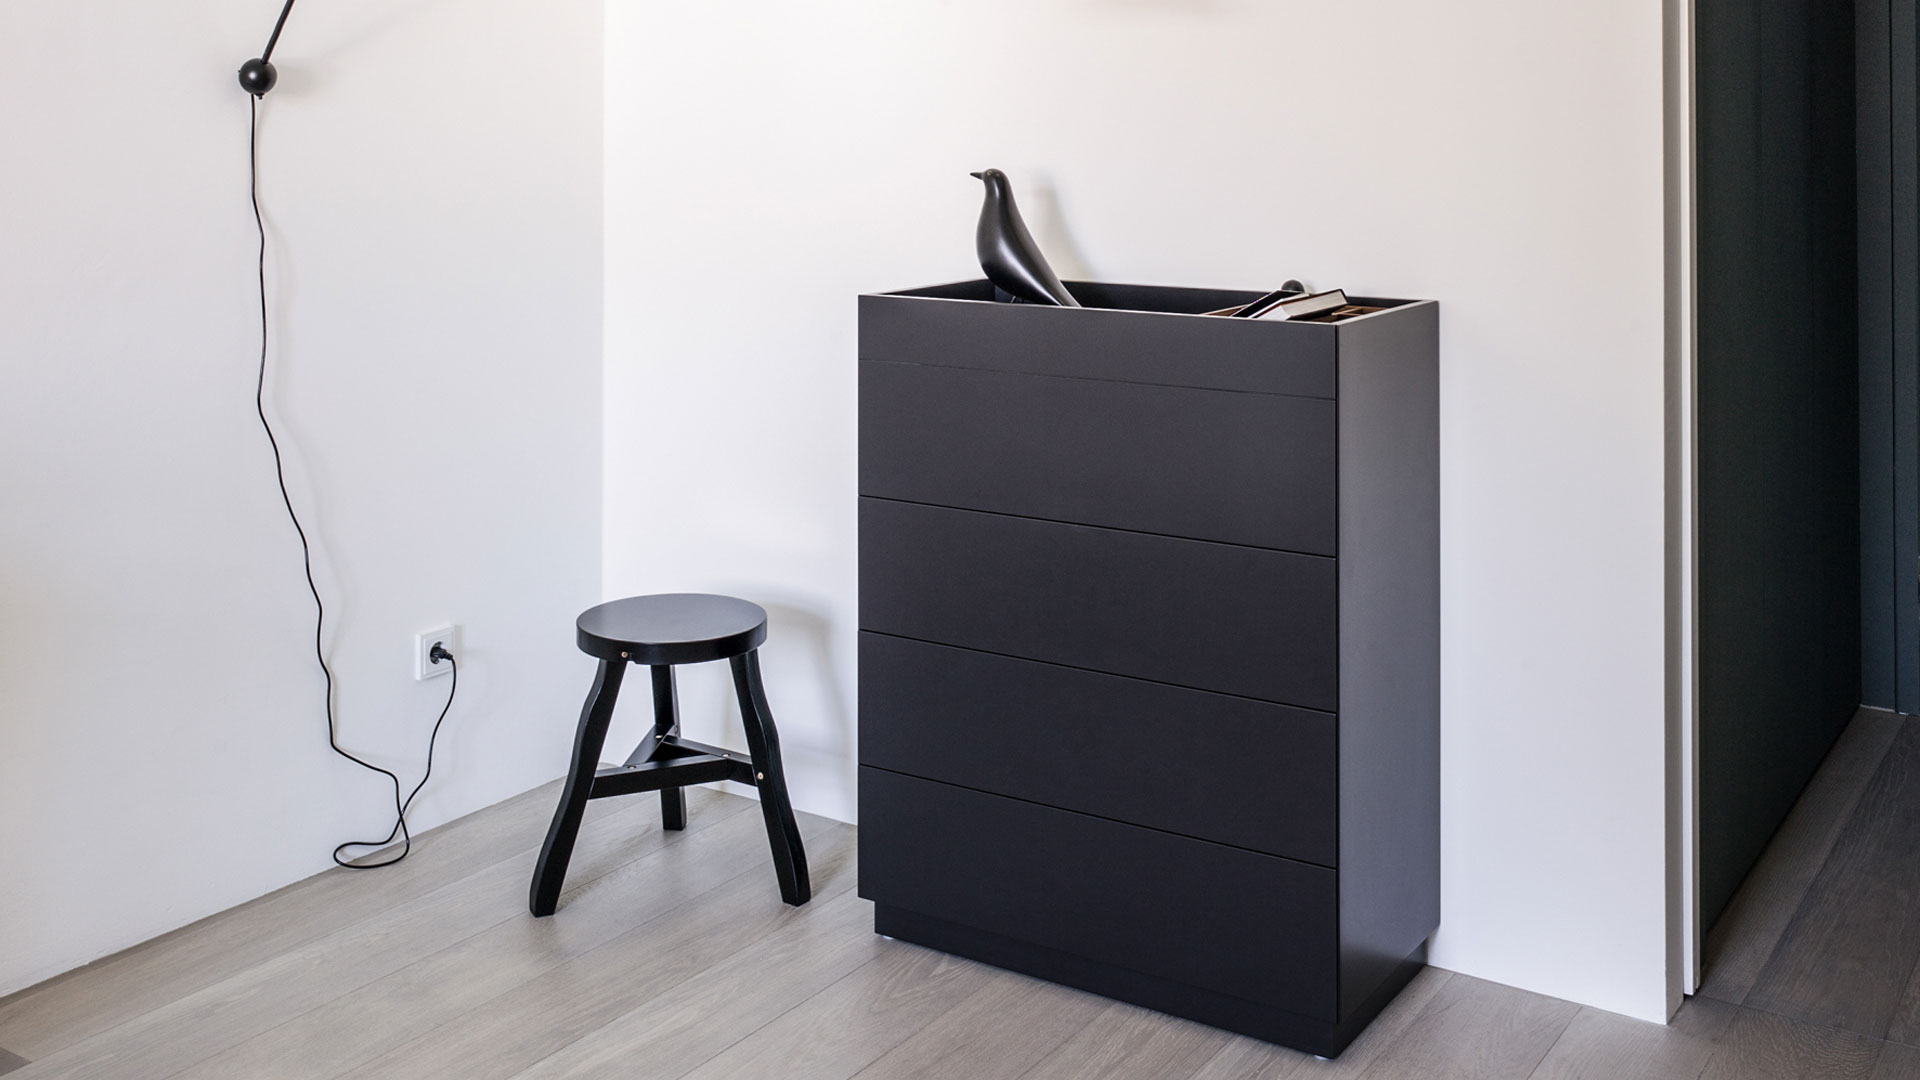 sch nbuch dielenm bel und garderoben bei prinz wohnen. Black Bedroom Furniture Sets. Home Design Ideas